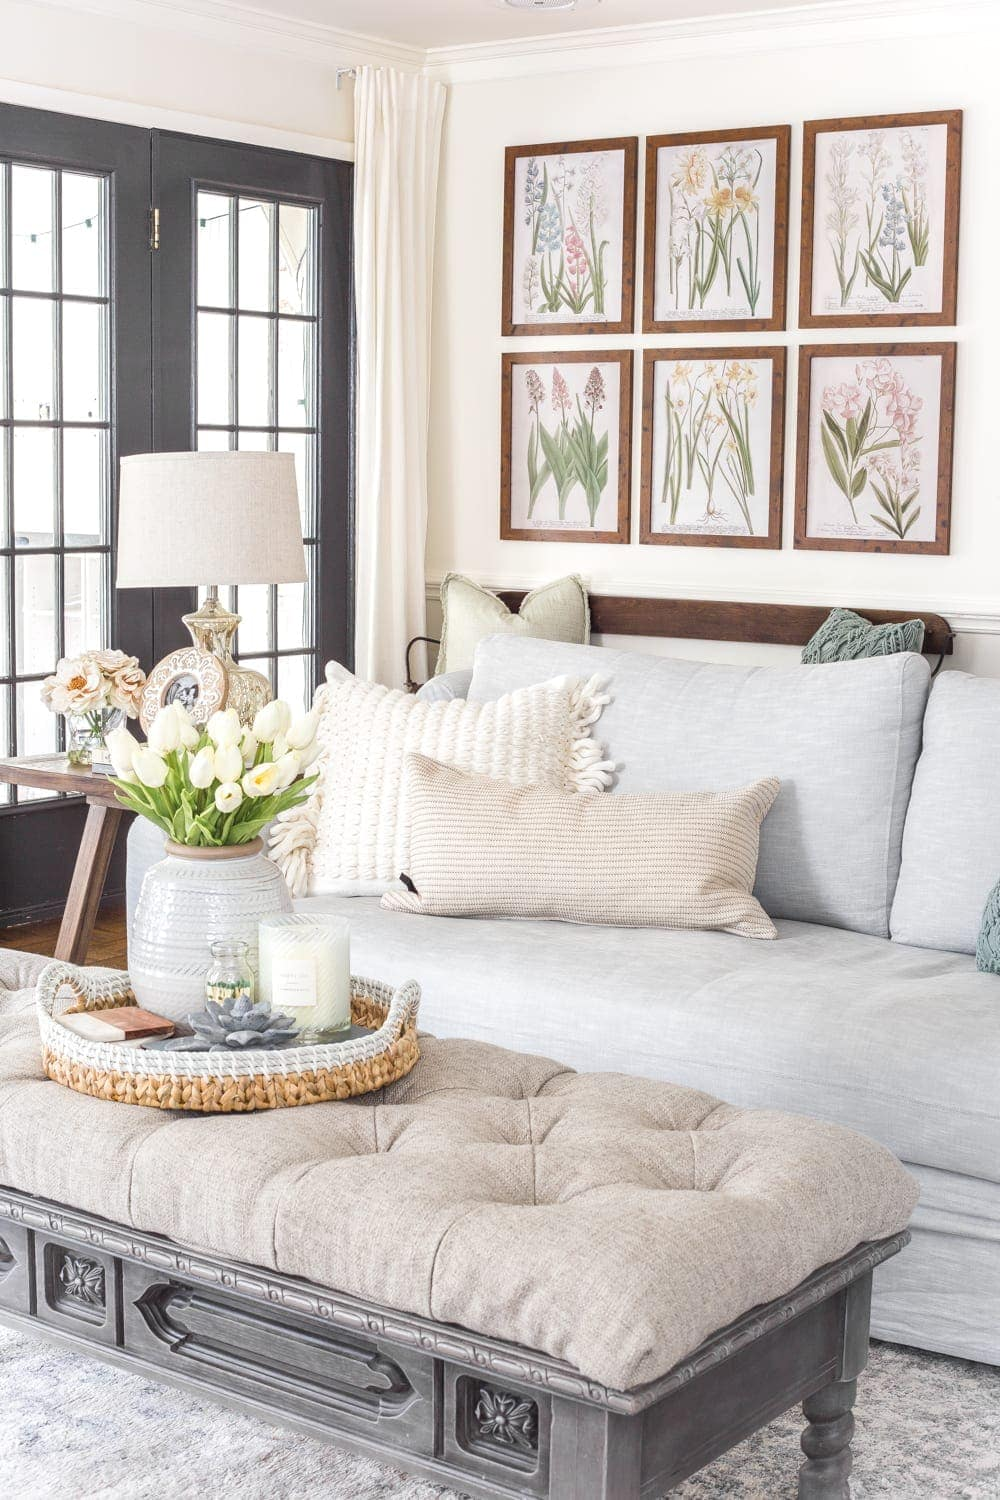 Simple Spring Home Tour | Neutral living room with artificial florals and small spring touches.